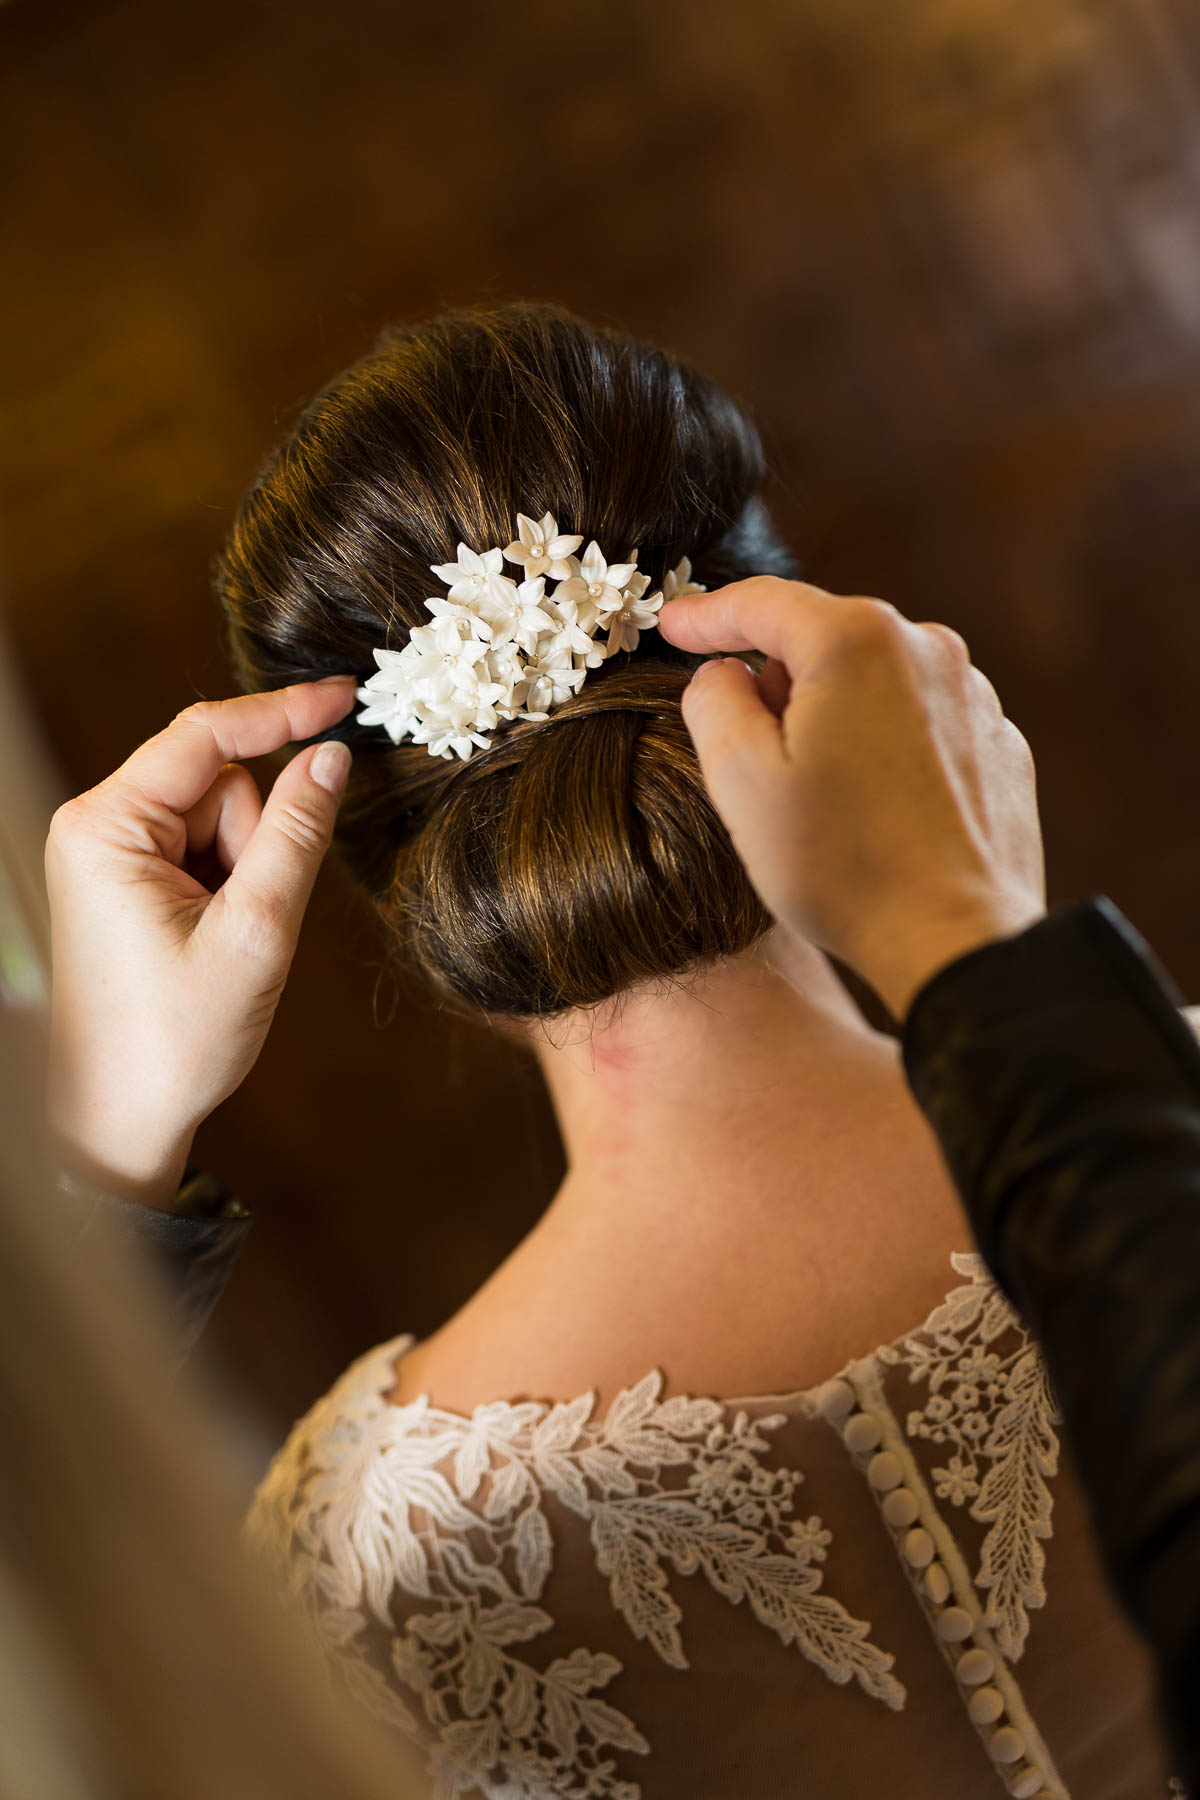 Red berry and navy wedding ideas bespoke bridal hair accessories from bedfordshire based Rachel Louise bridal